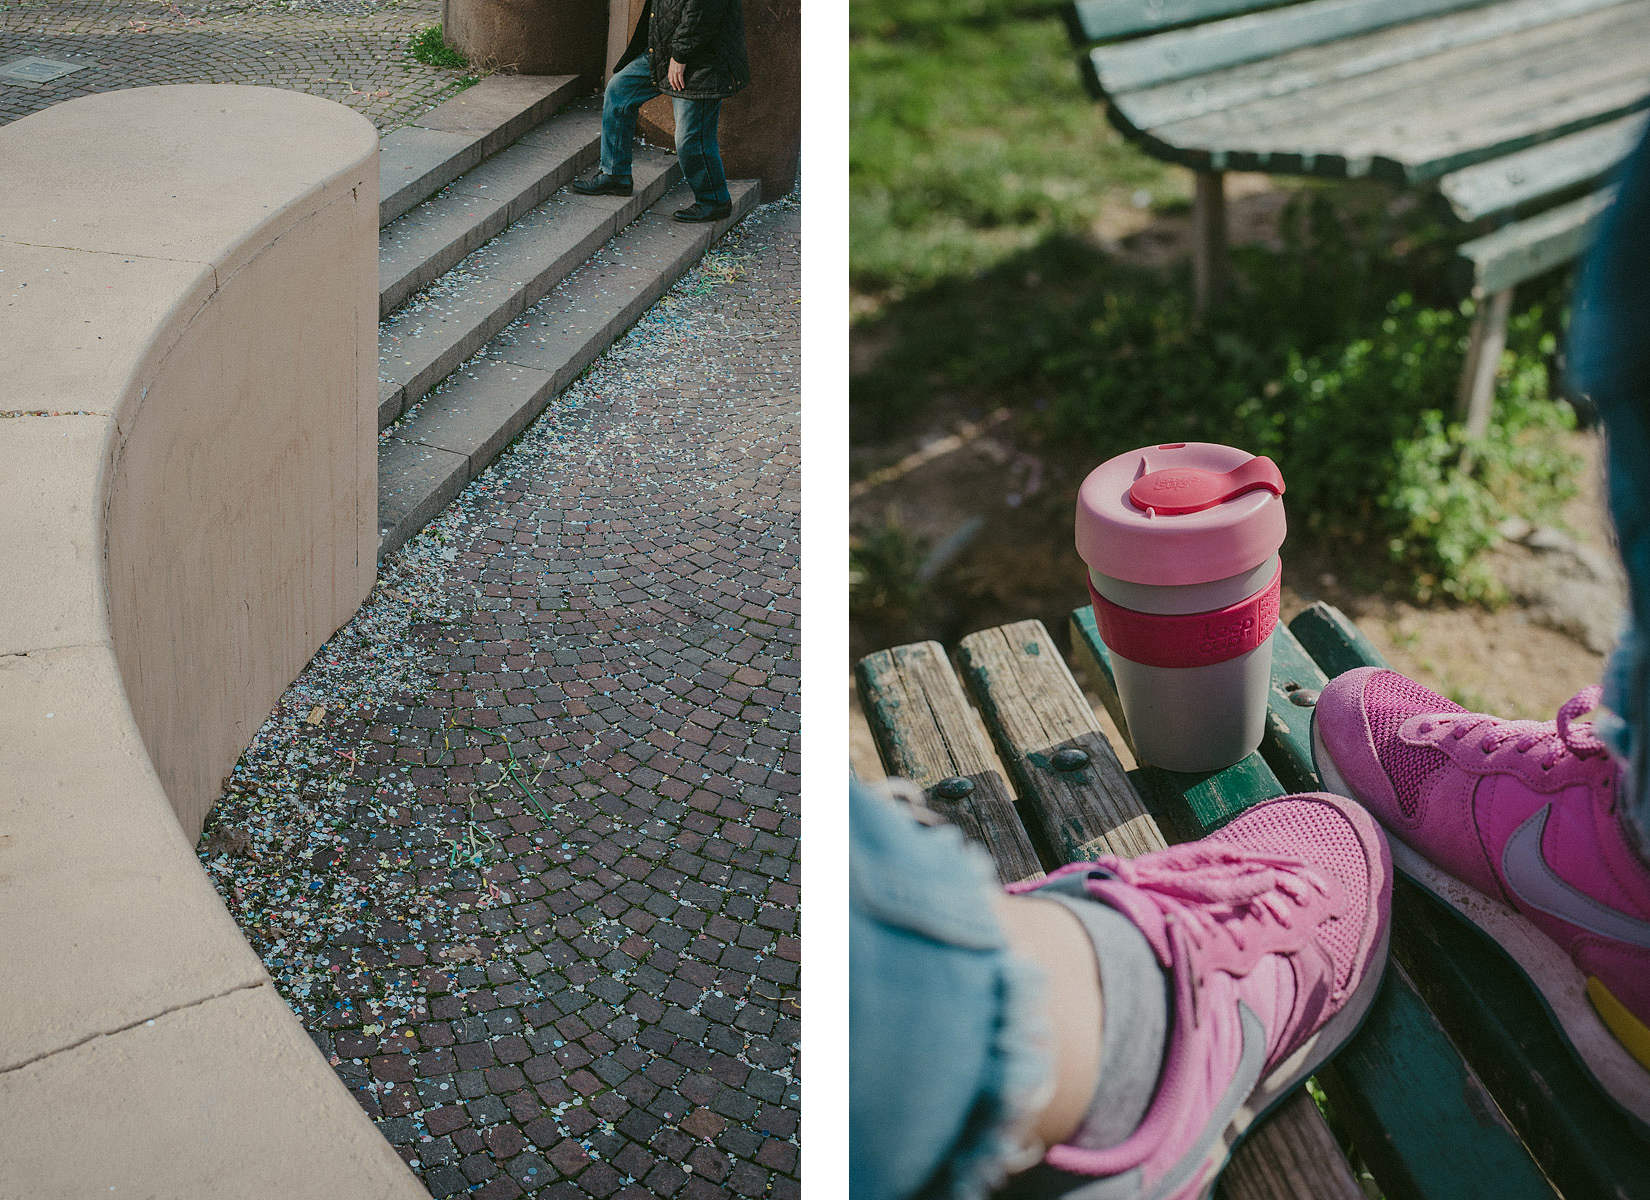 Detail of a man going up some stairs in the Vittorio Formentano park in Milan and a detail of a Keep Cup mug on a bench with some pink Nike shoes